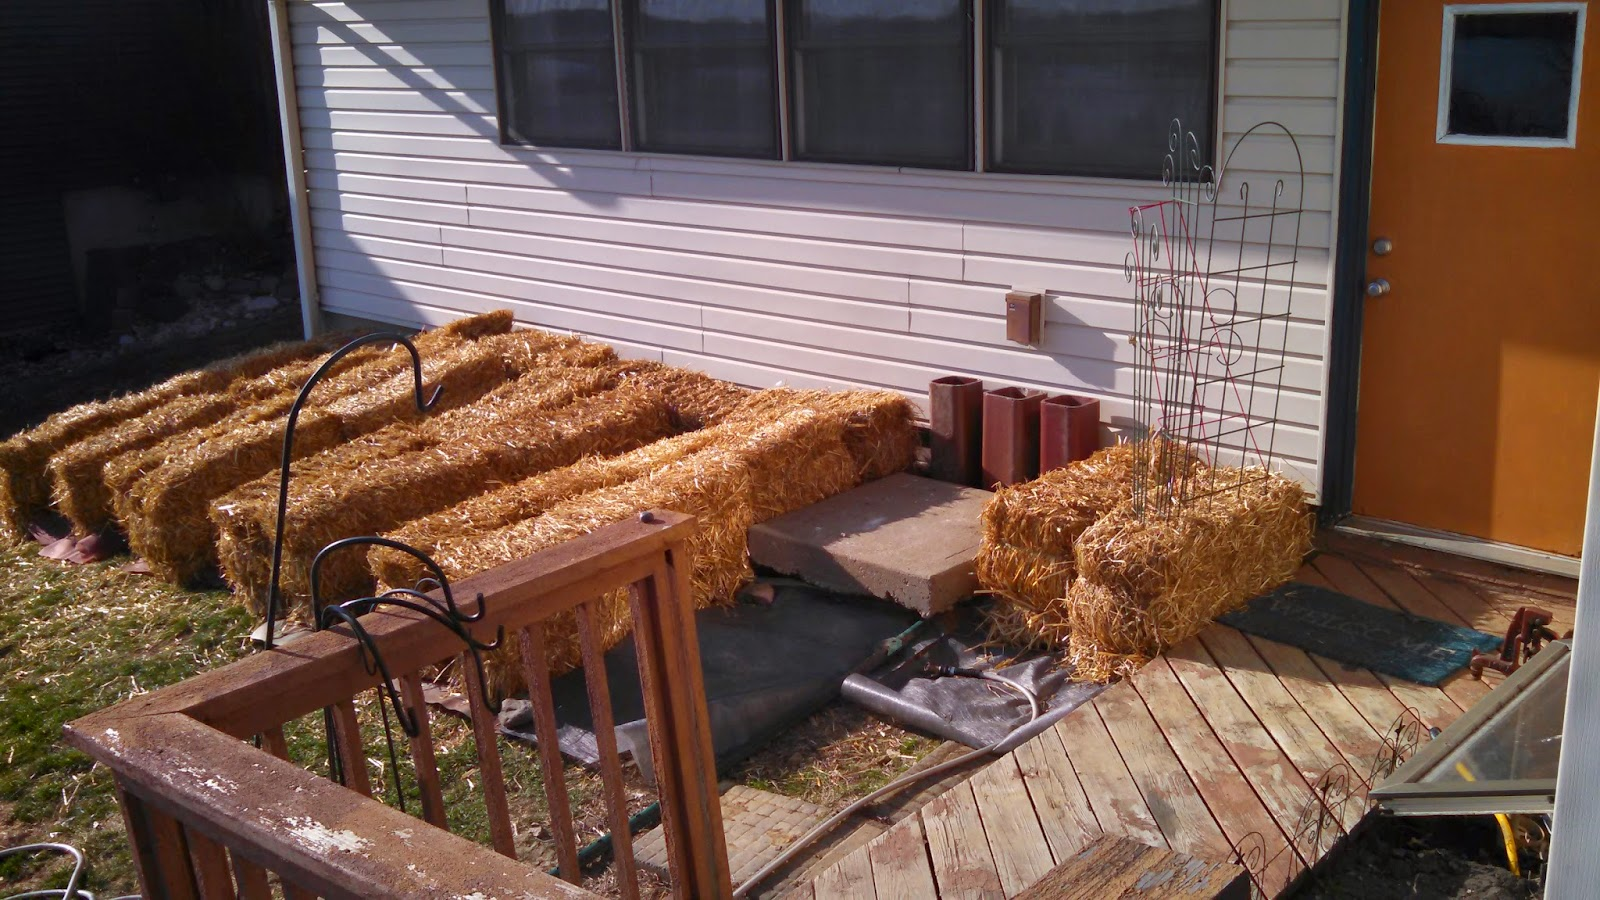 Straw Bale Garden- Rough Layout Before Staking the Bales